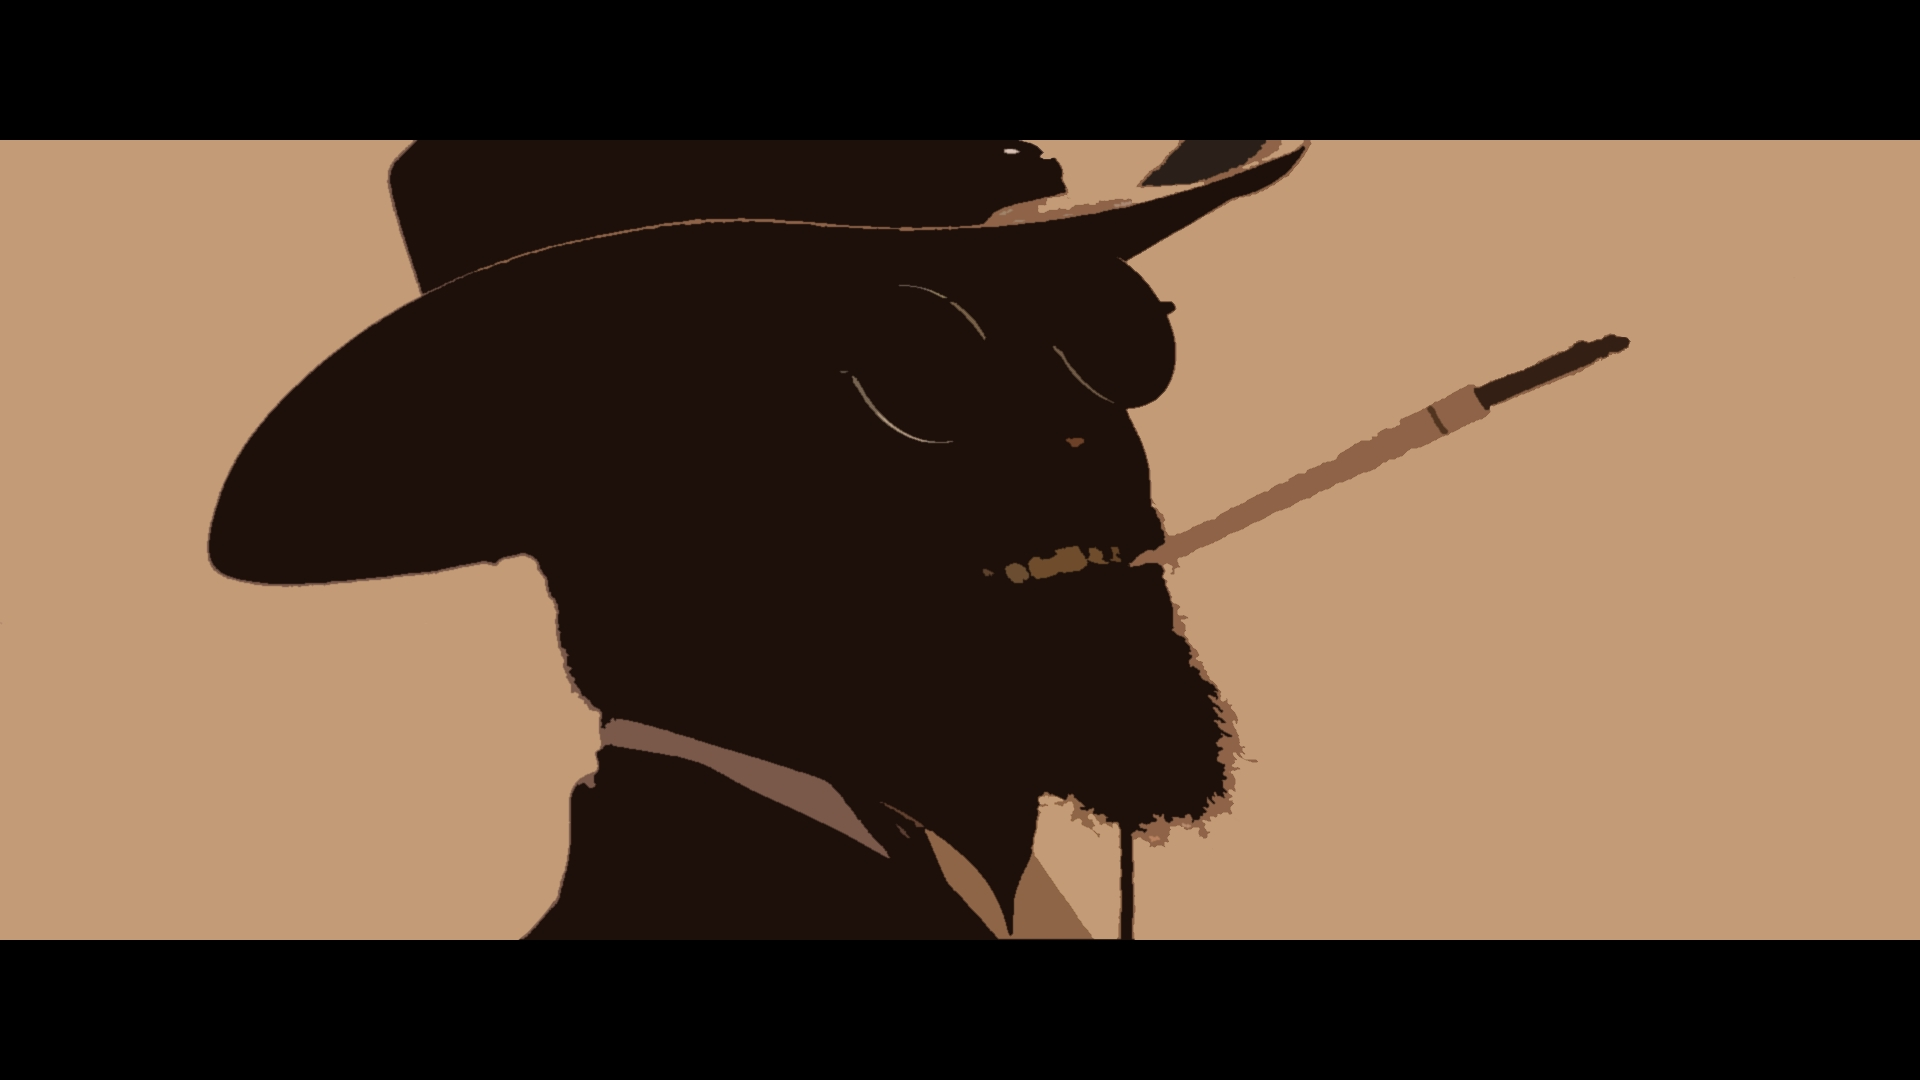 Django Unchained Wallpapers, Pictures, Images